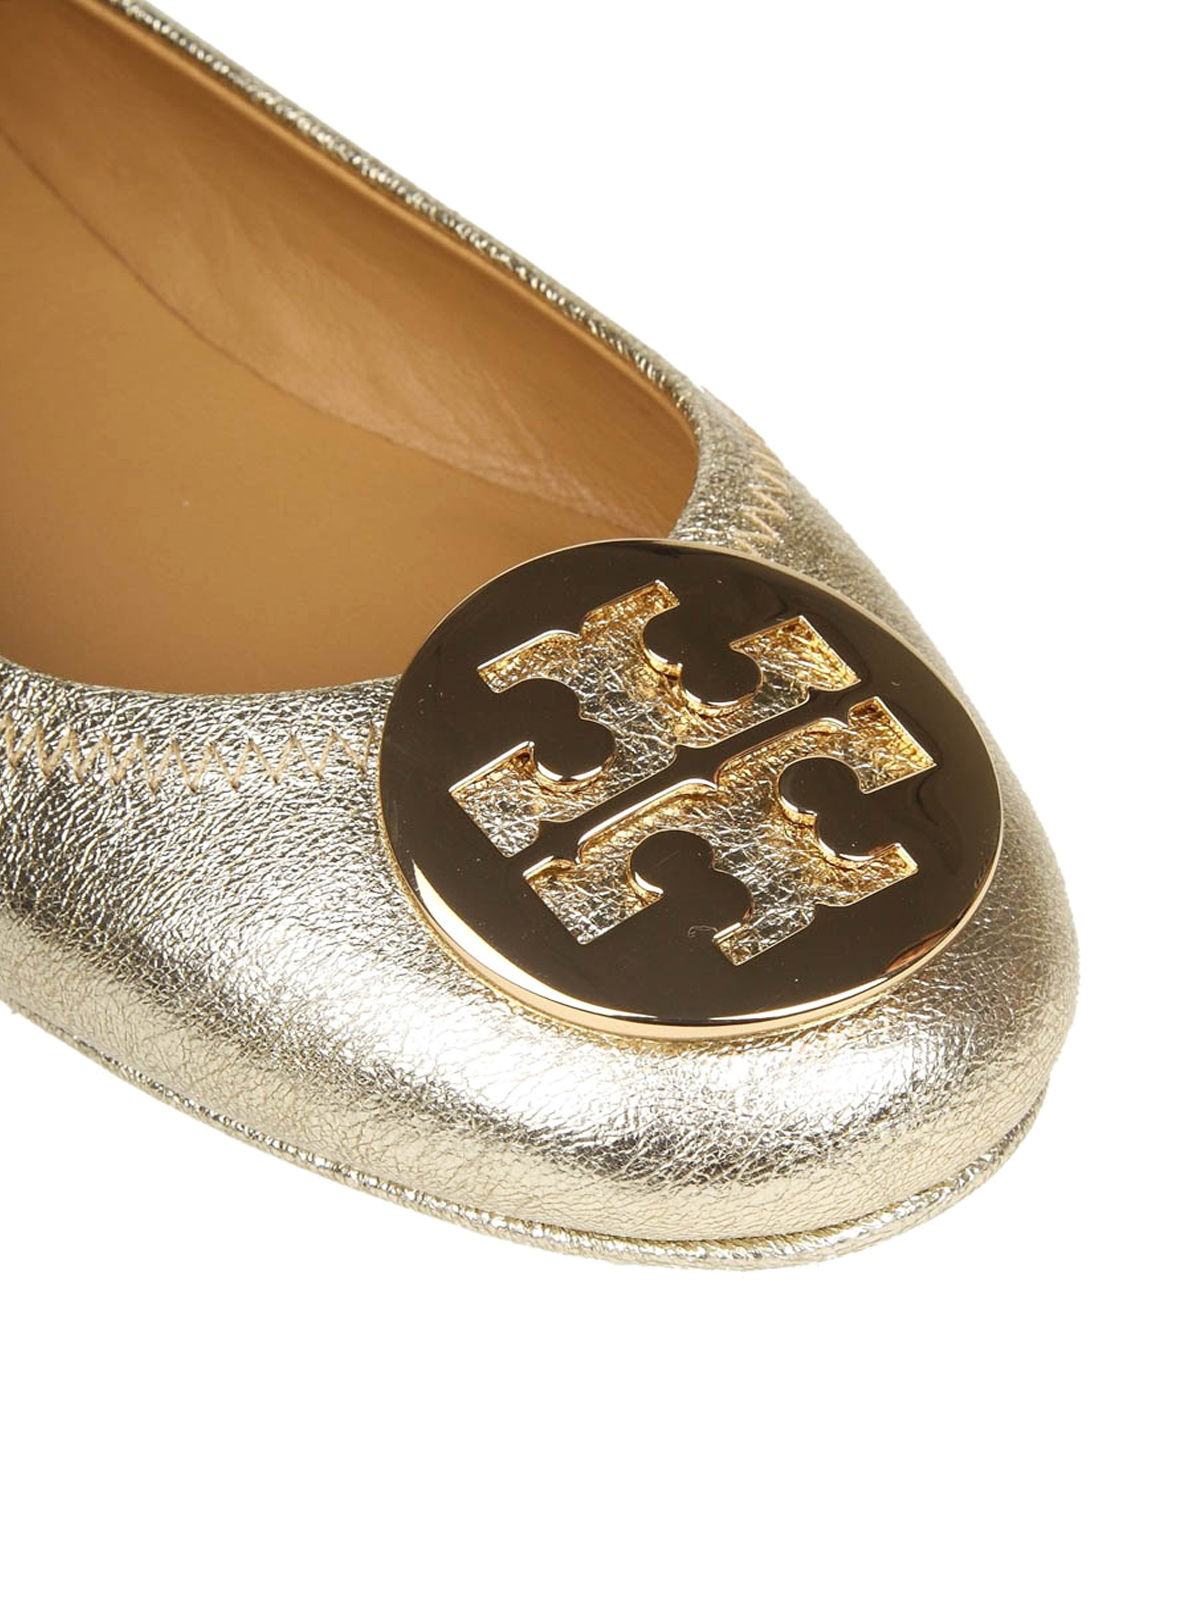 66a46a5009d84 Ikrix tory burch flat shoes minnie metallic leather folding flats jpg  1200x1600 Gold tory burch slippers